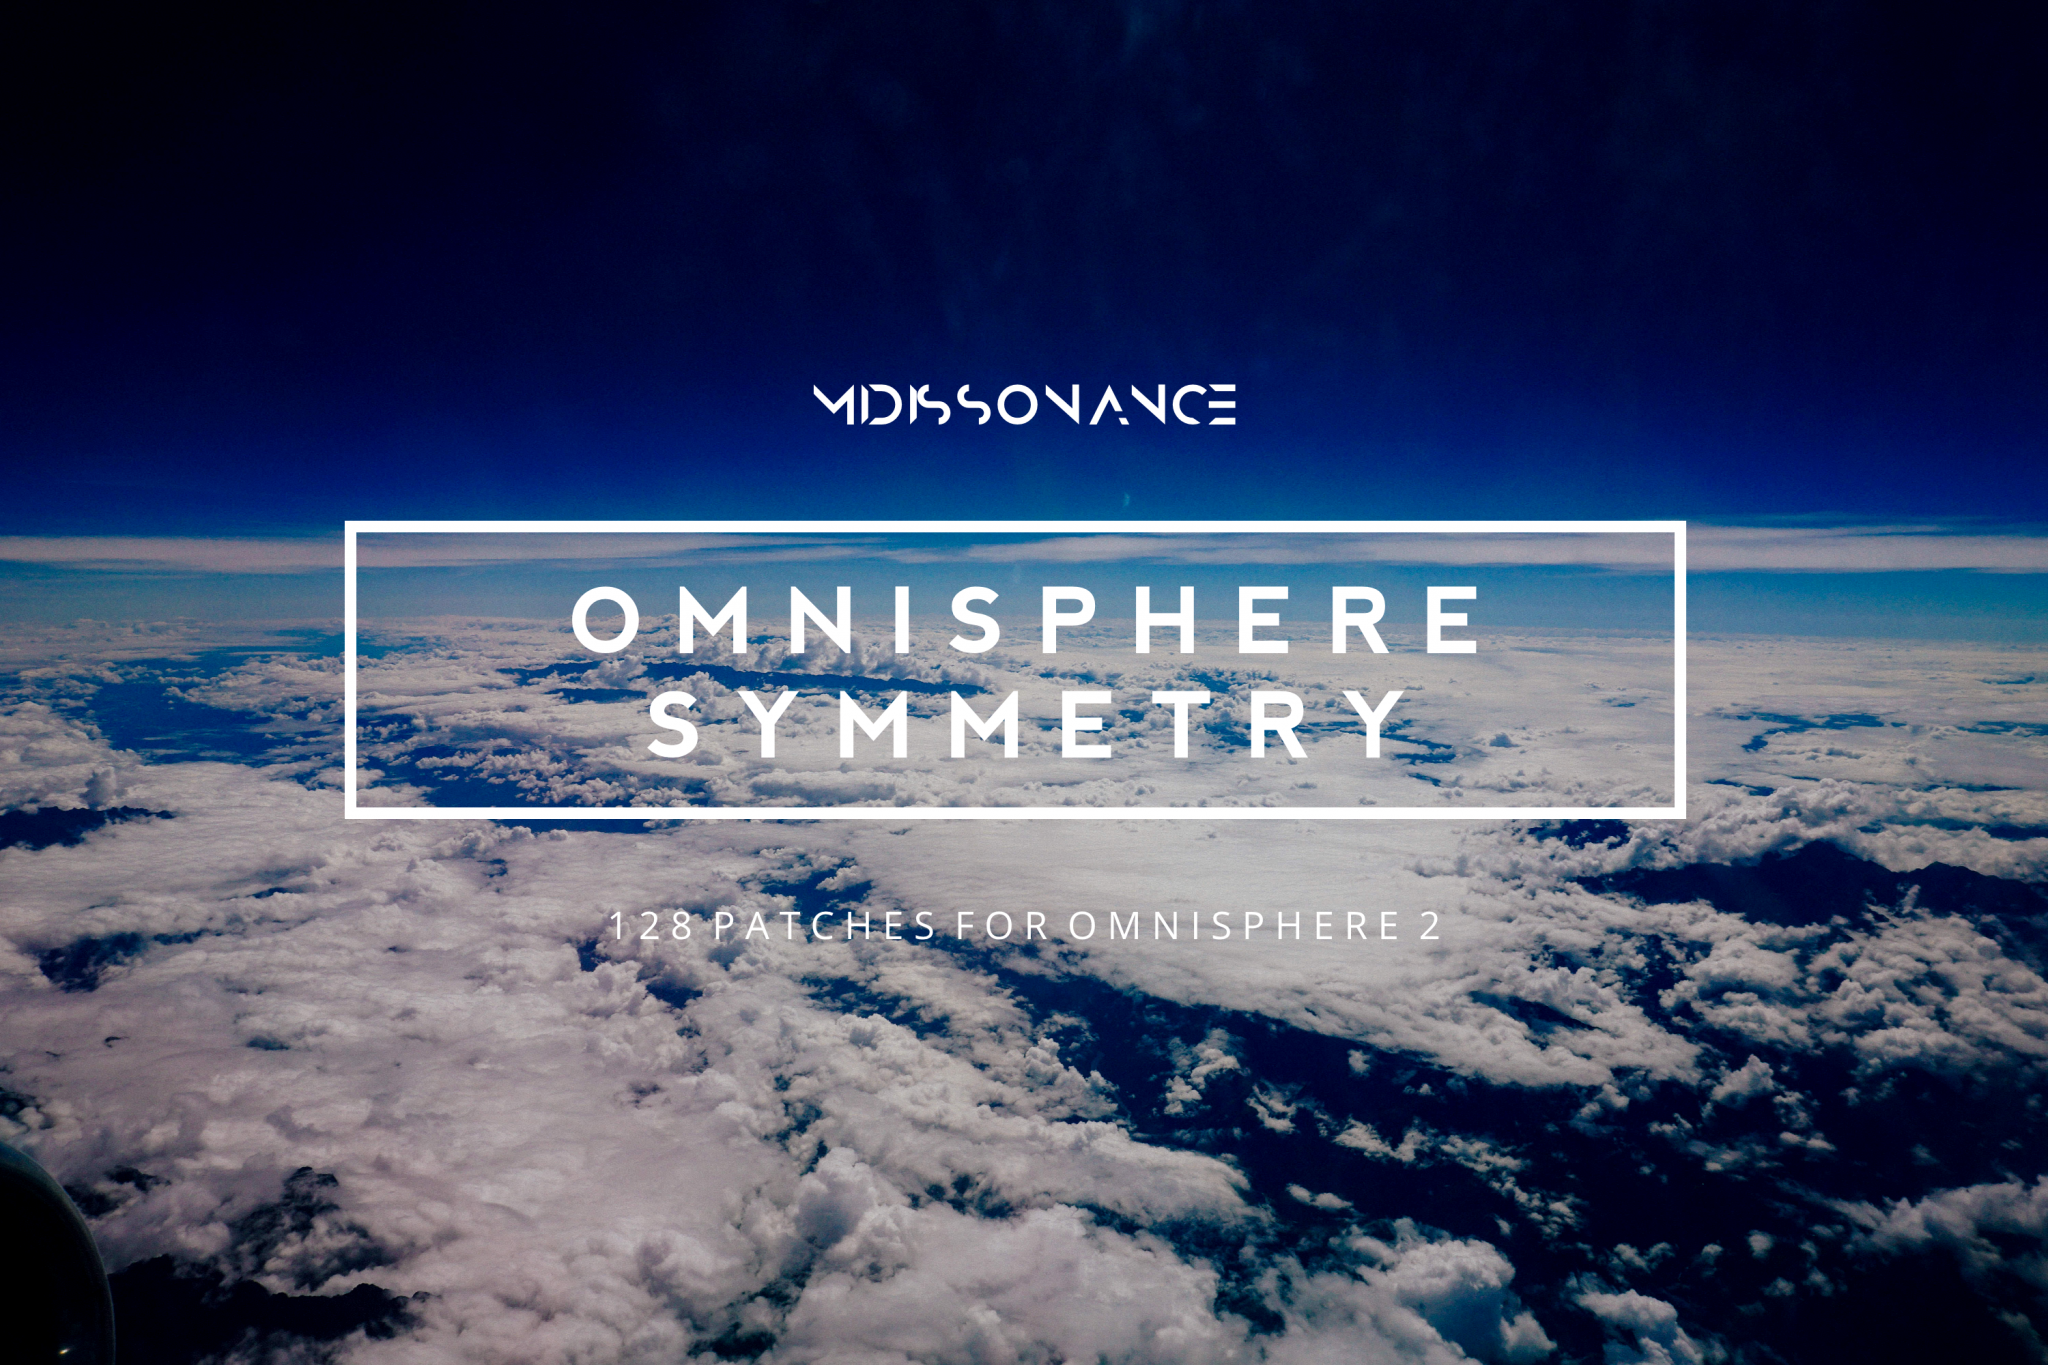 Omnisphere Symmetry – MIDIssonance